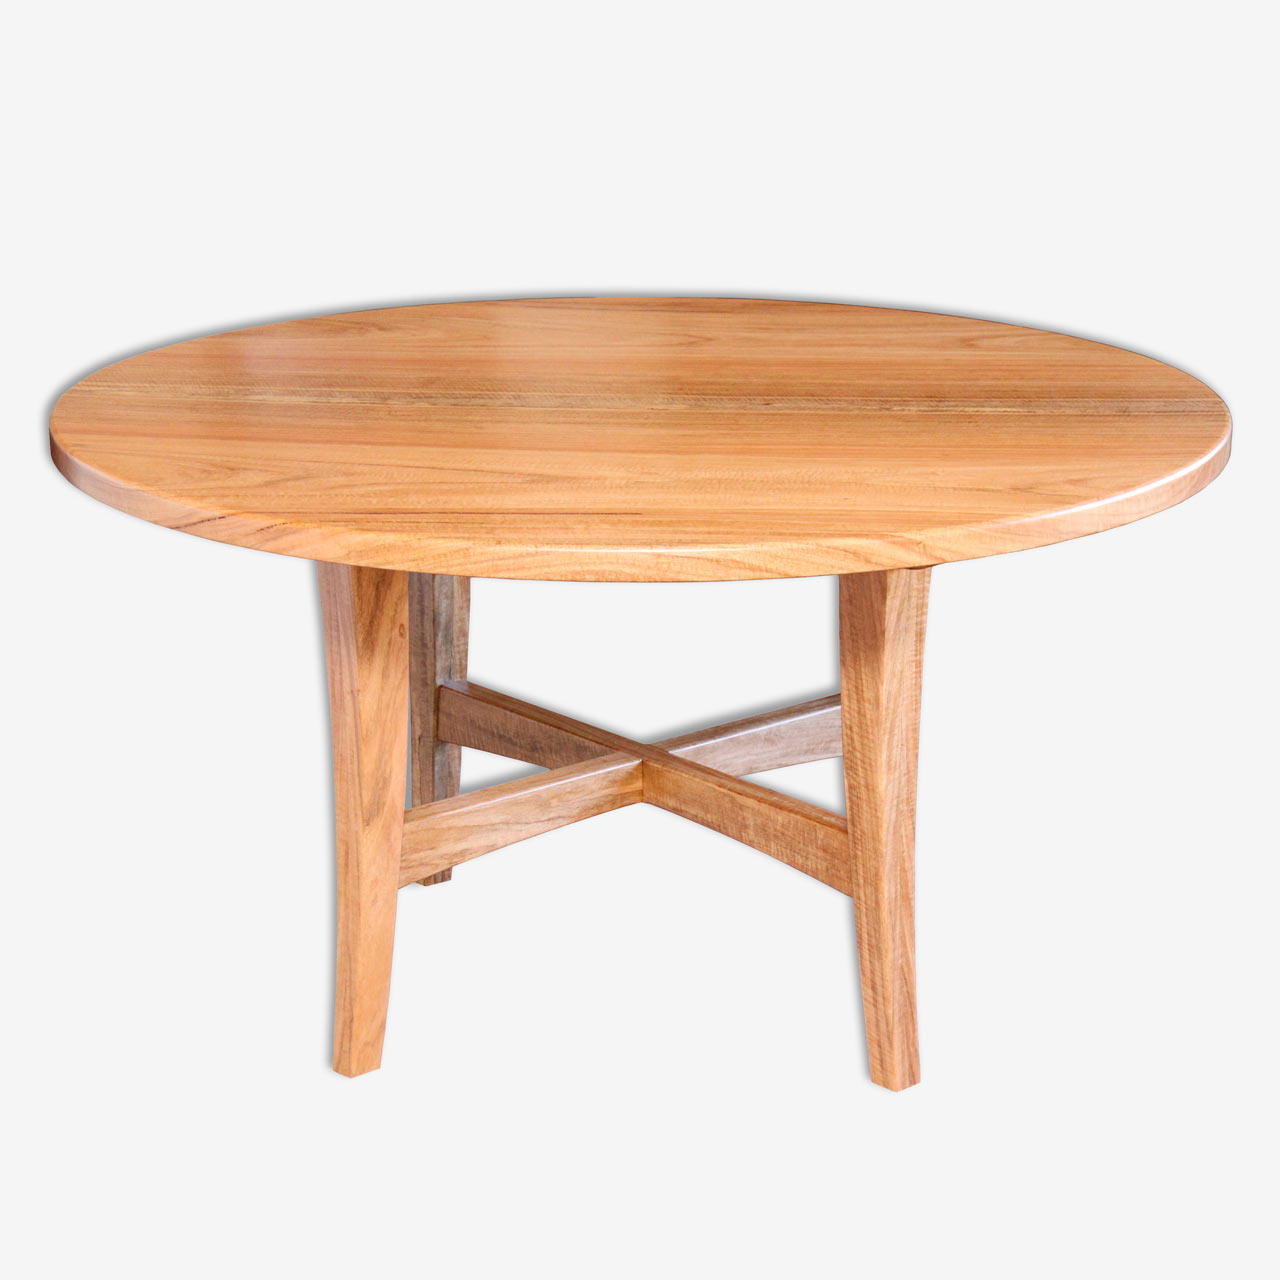 Glass Coffee Tables Perth: 'Focus' Round Dining Table